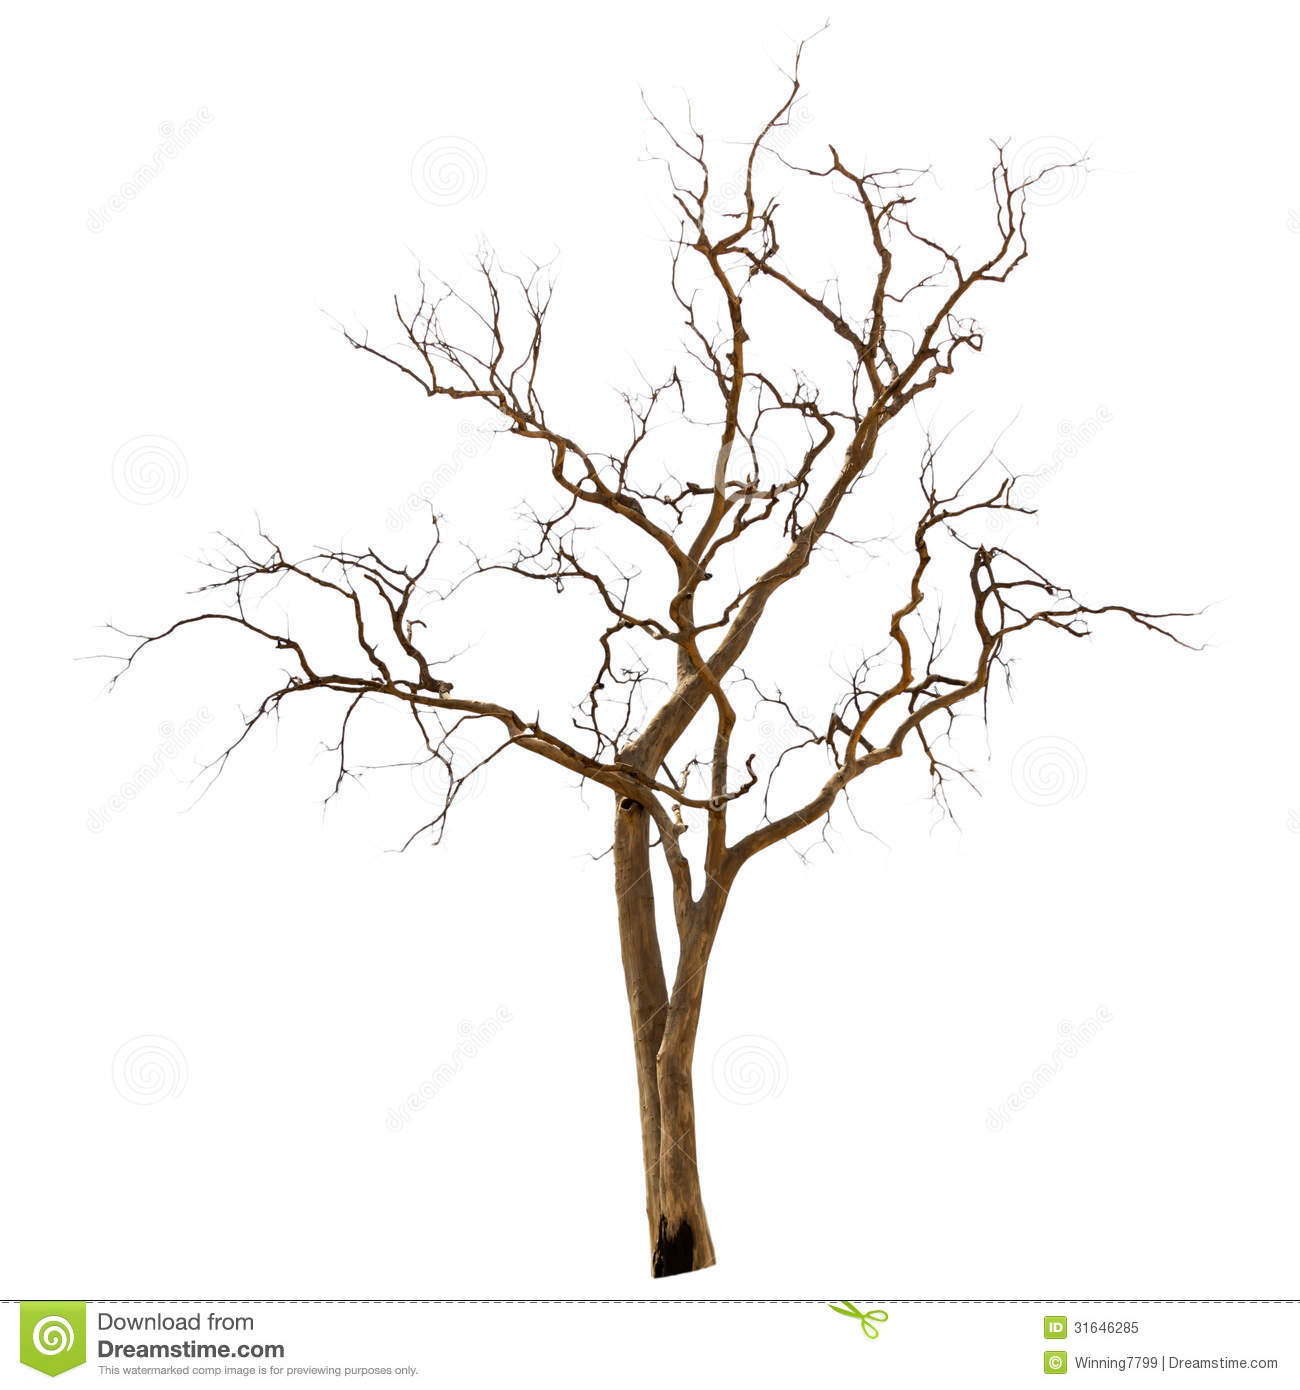 Dried trees clipart 20 free Cliparts | Download images on ...